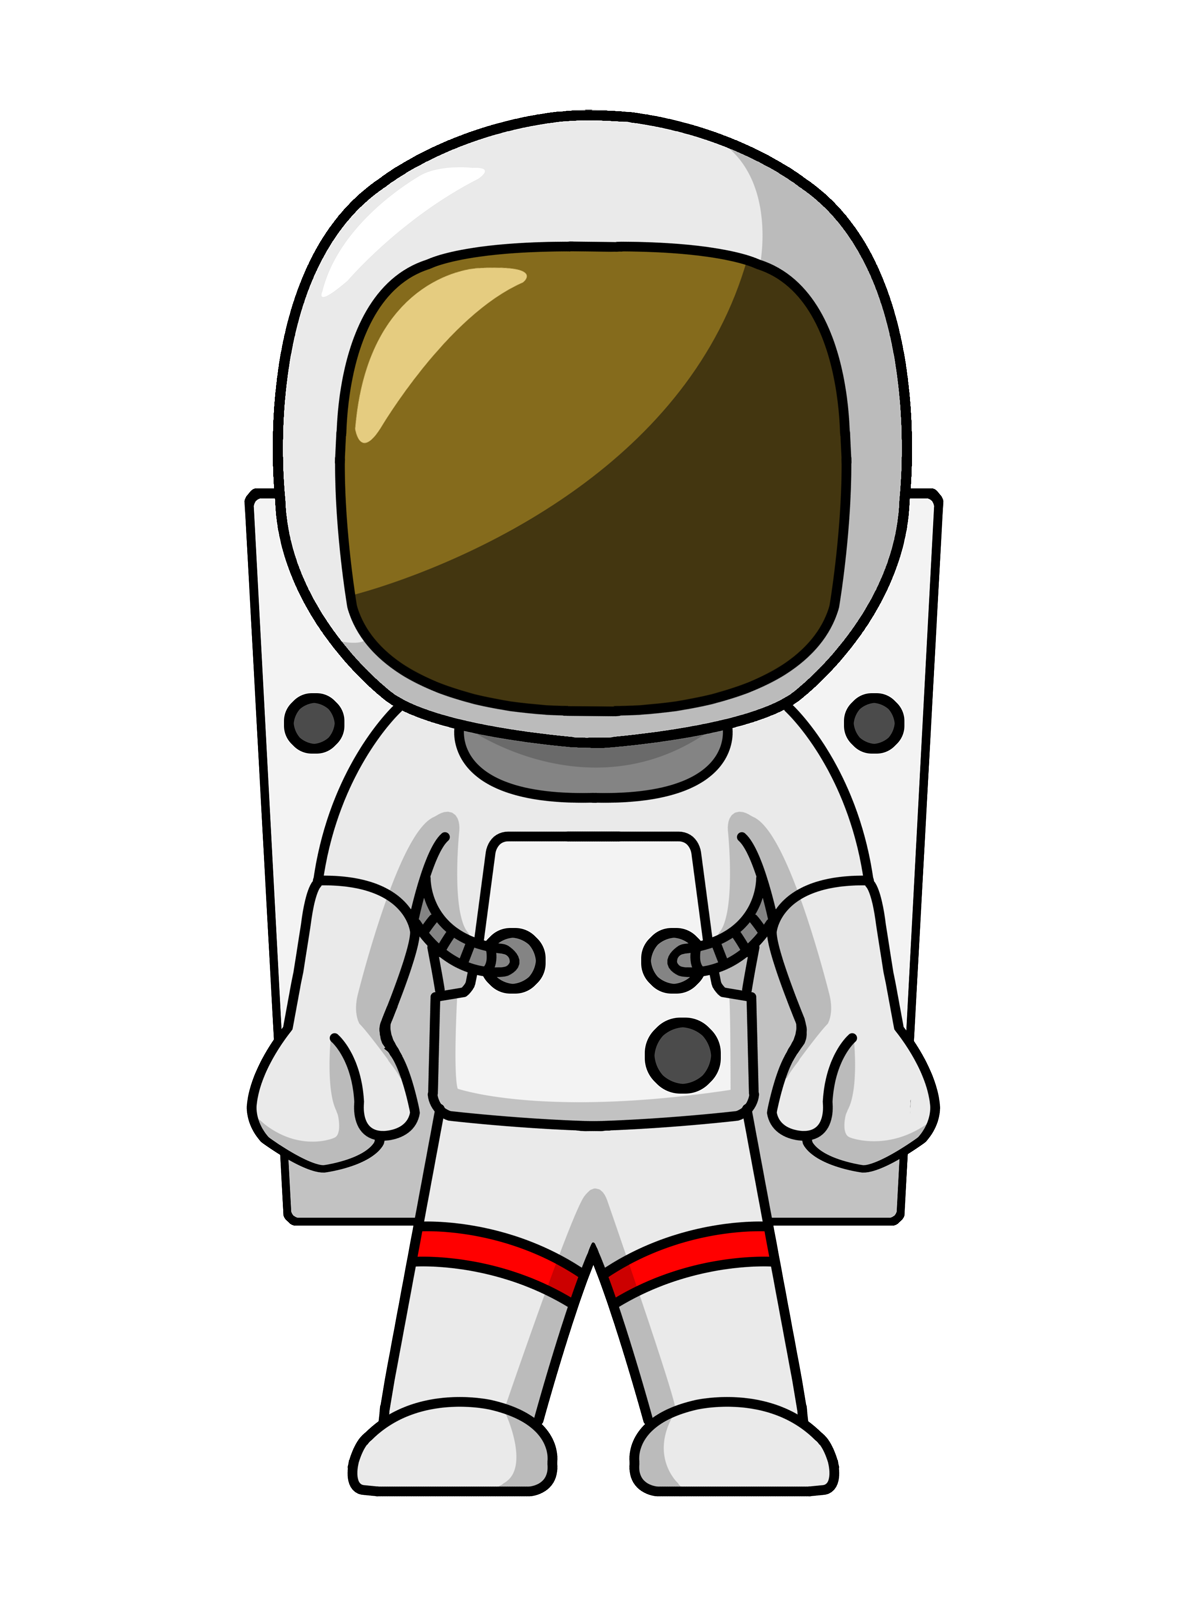 Astronaut clipart body, Astronaut body Transparent FREE for.